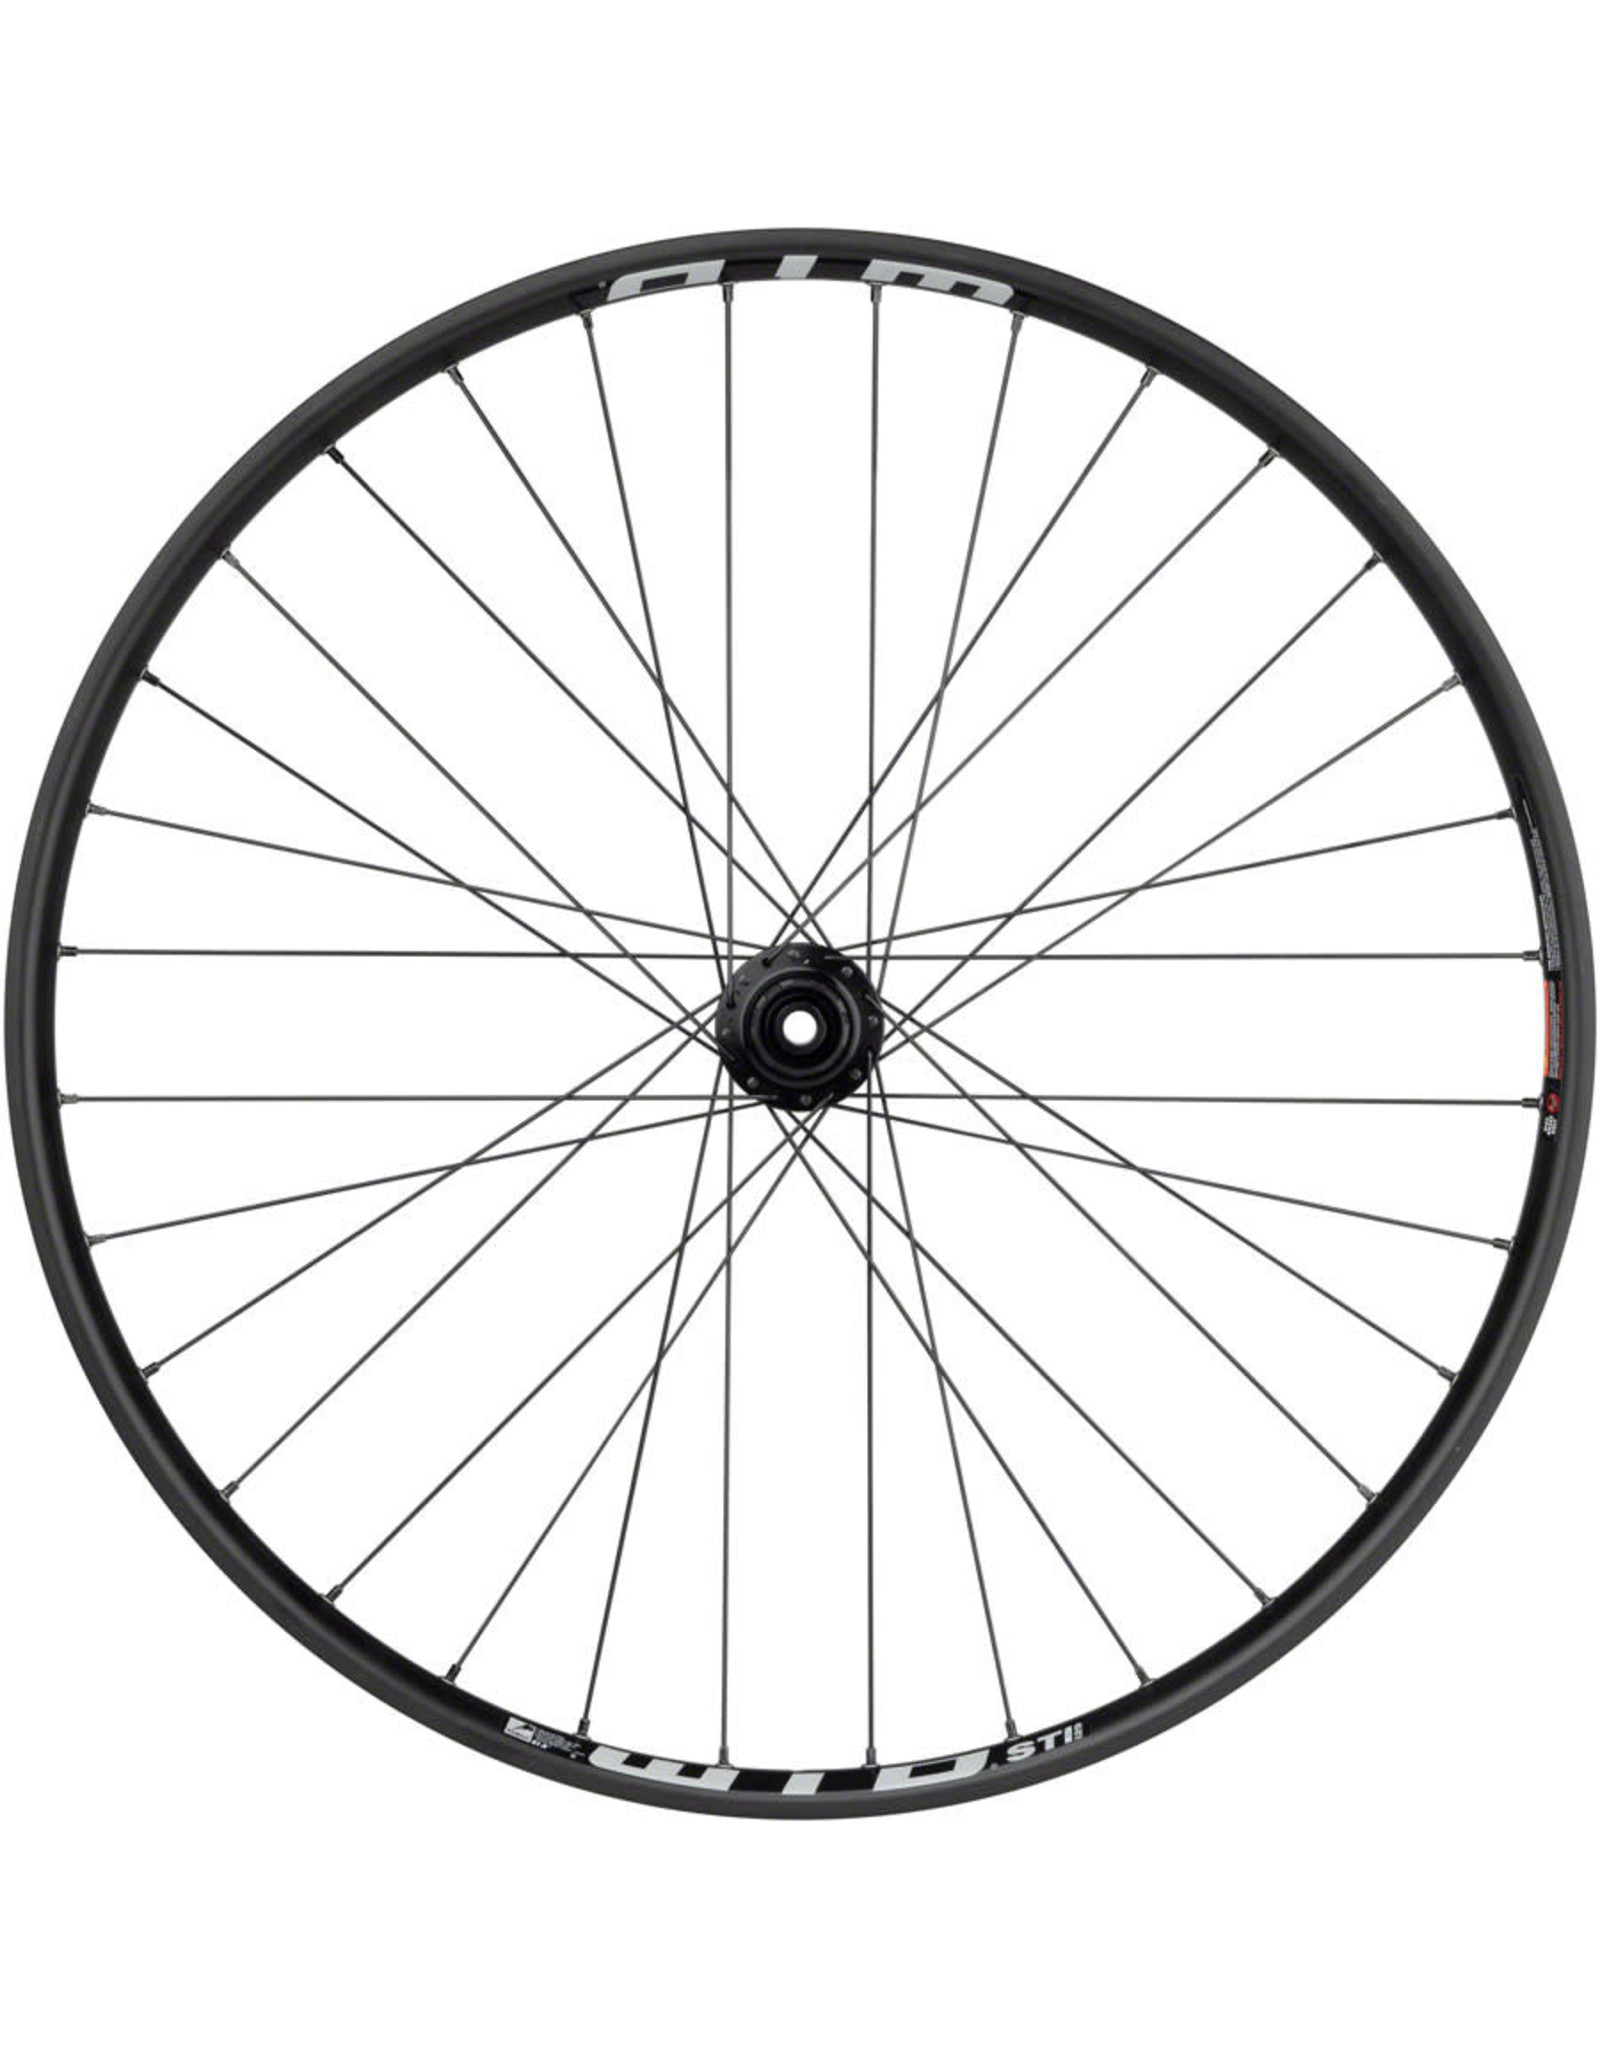 "Quality Wheels WTB ST Light i29 Rear Wheel - 27.5"", 12 x 148mm Boost, Center-Lock, HG 11, Black"